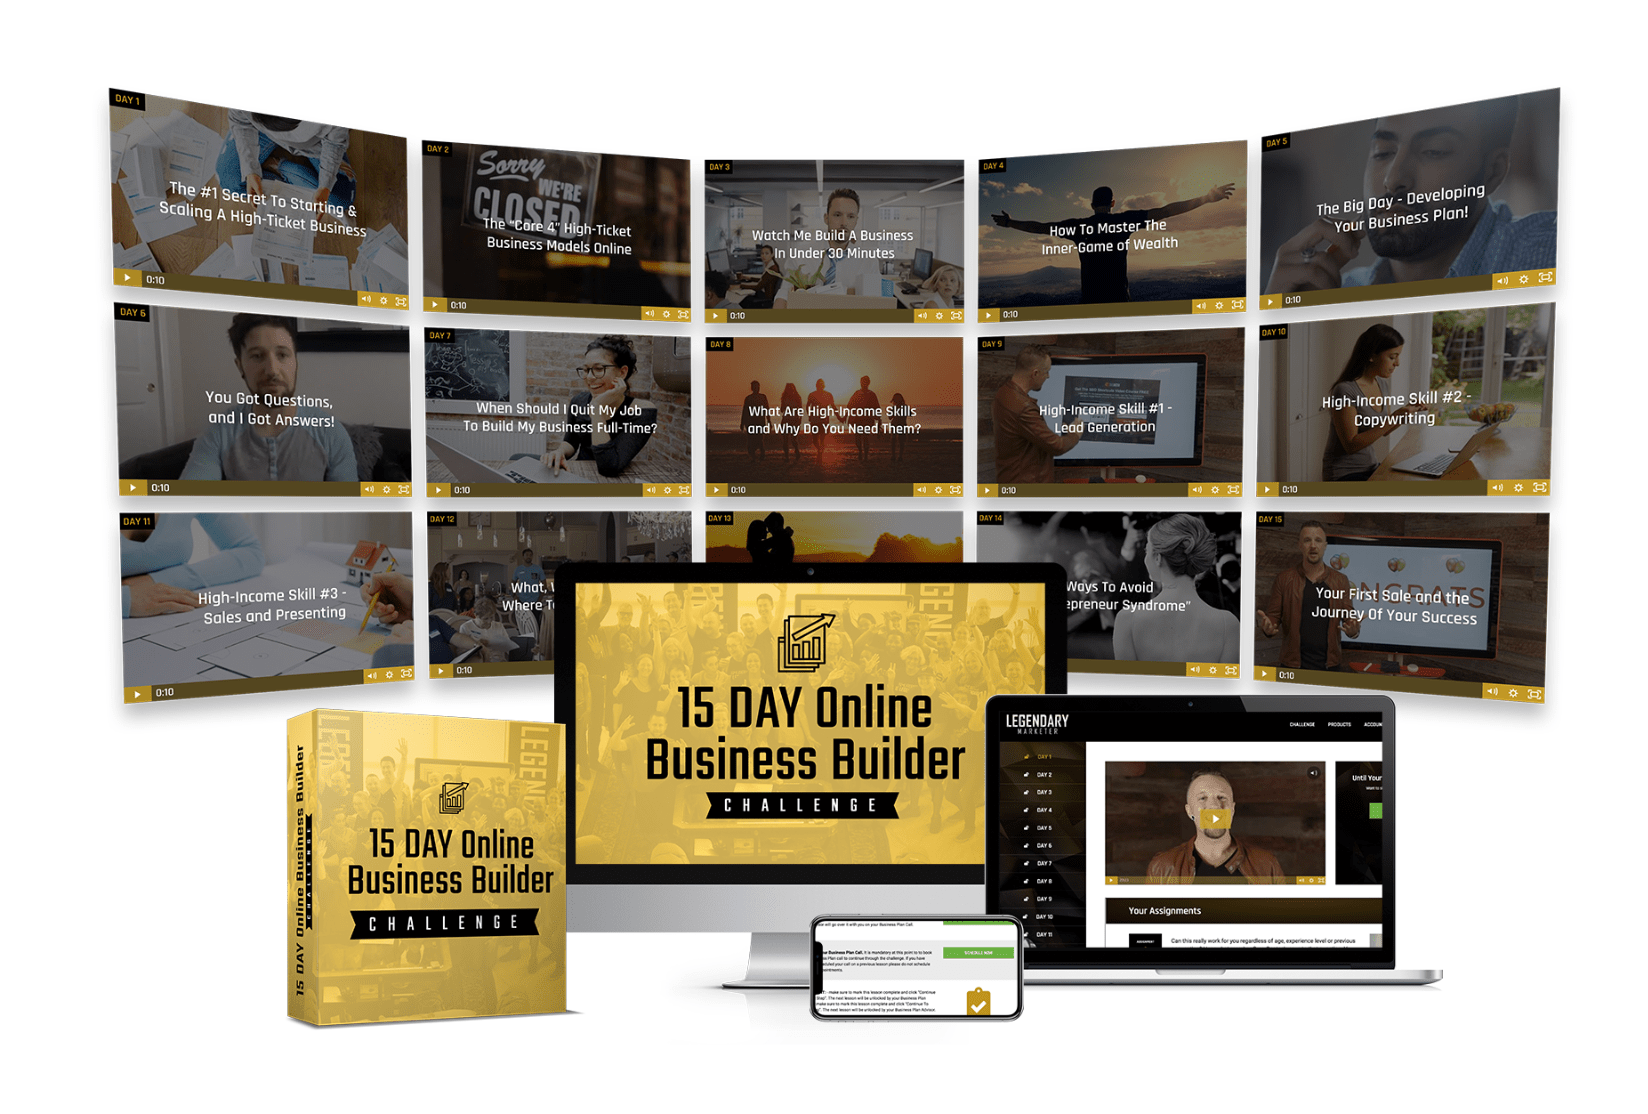 Legendary Marketer Internet Marketing Program Outlet Store